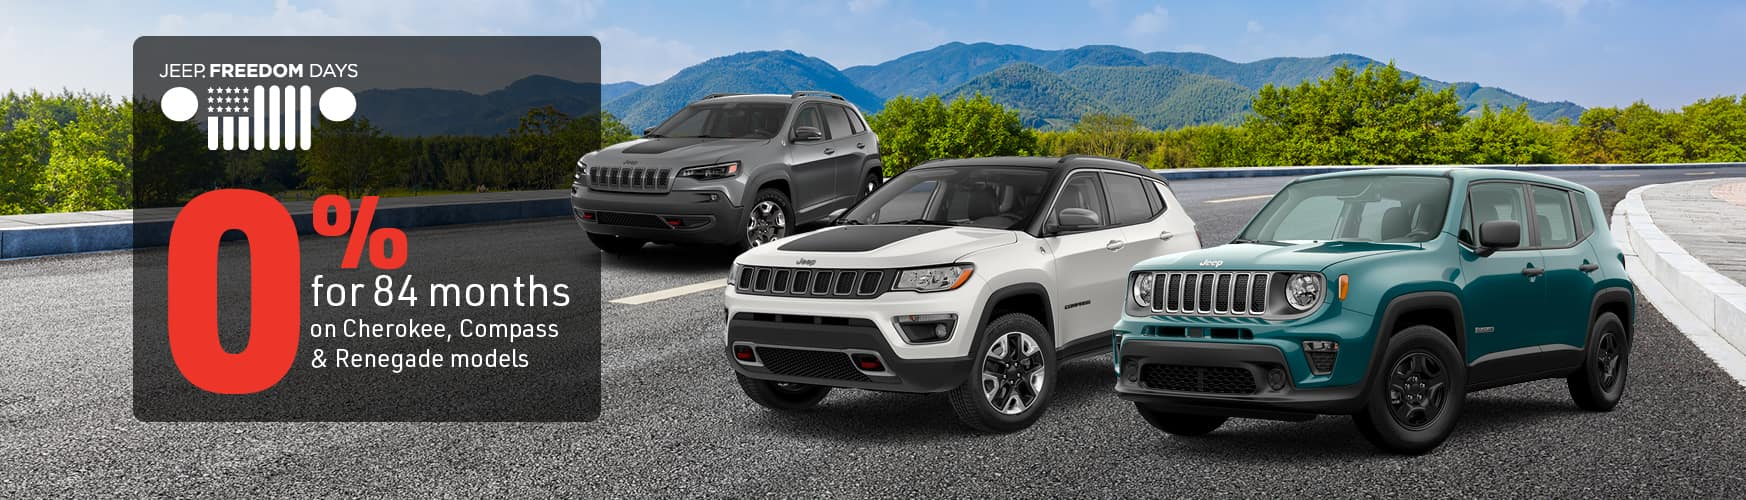 0% for 84 months on Renegade, Compass, Cherokee models